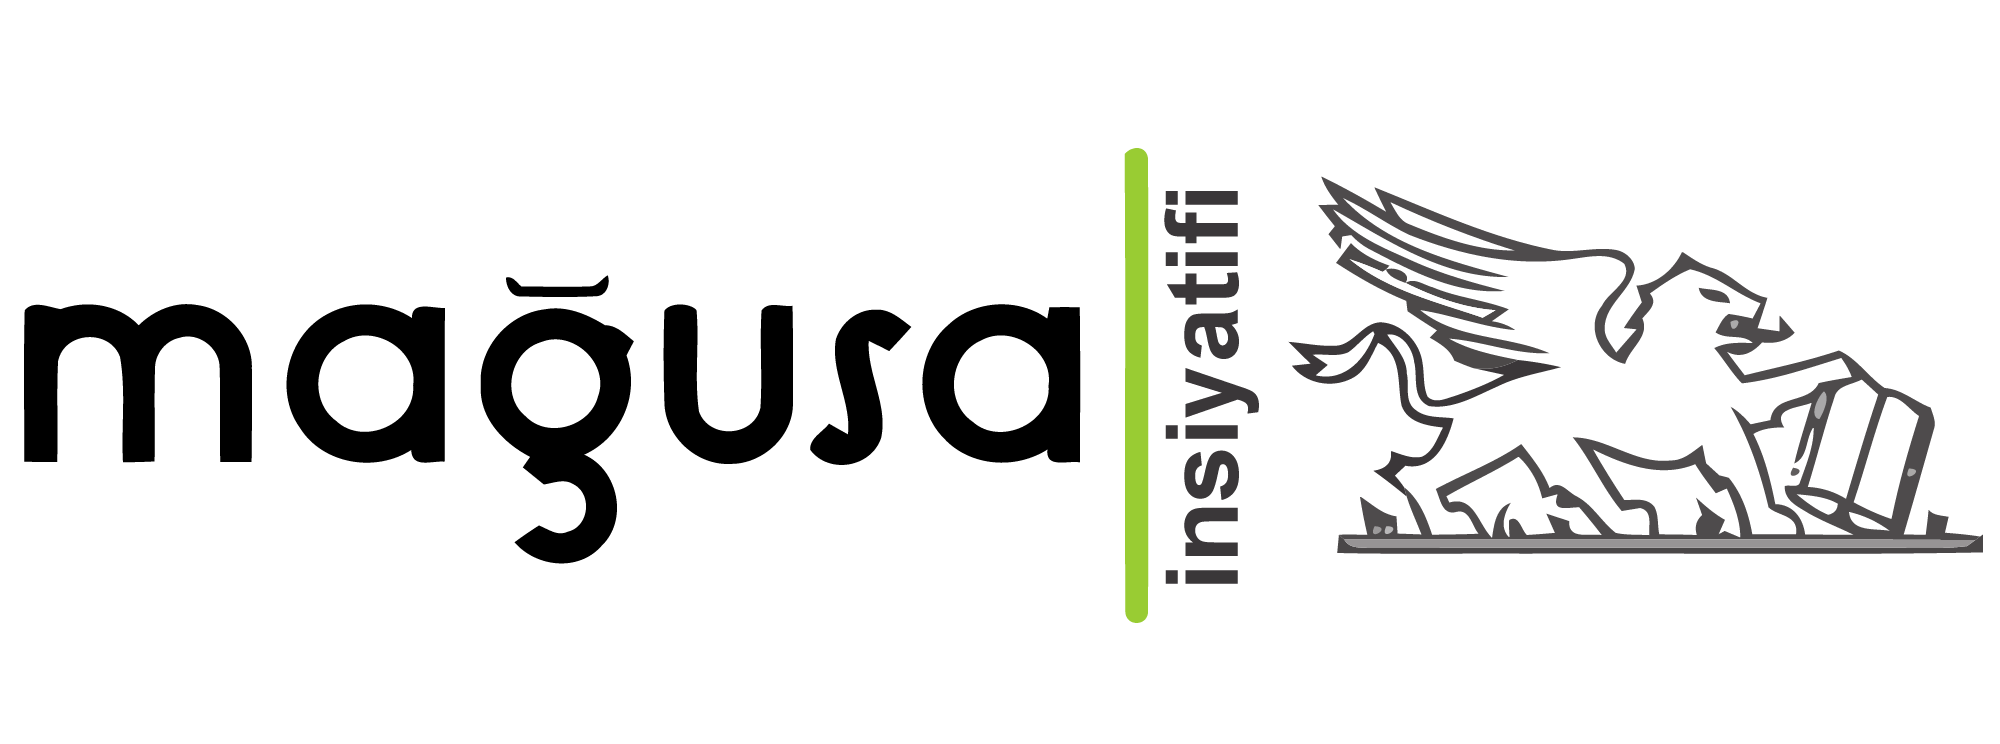 C:\Users\User\Desktop\Documents\My Documents\Magusa_insiyatifi_logo.png